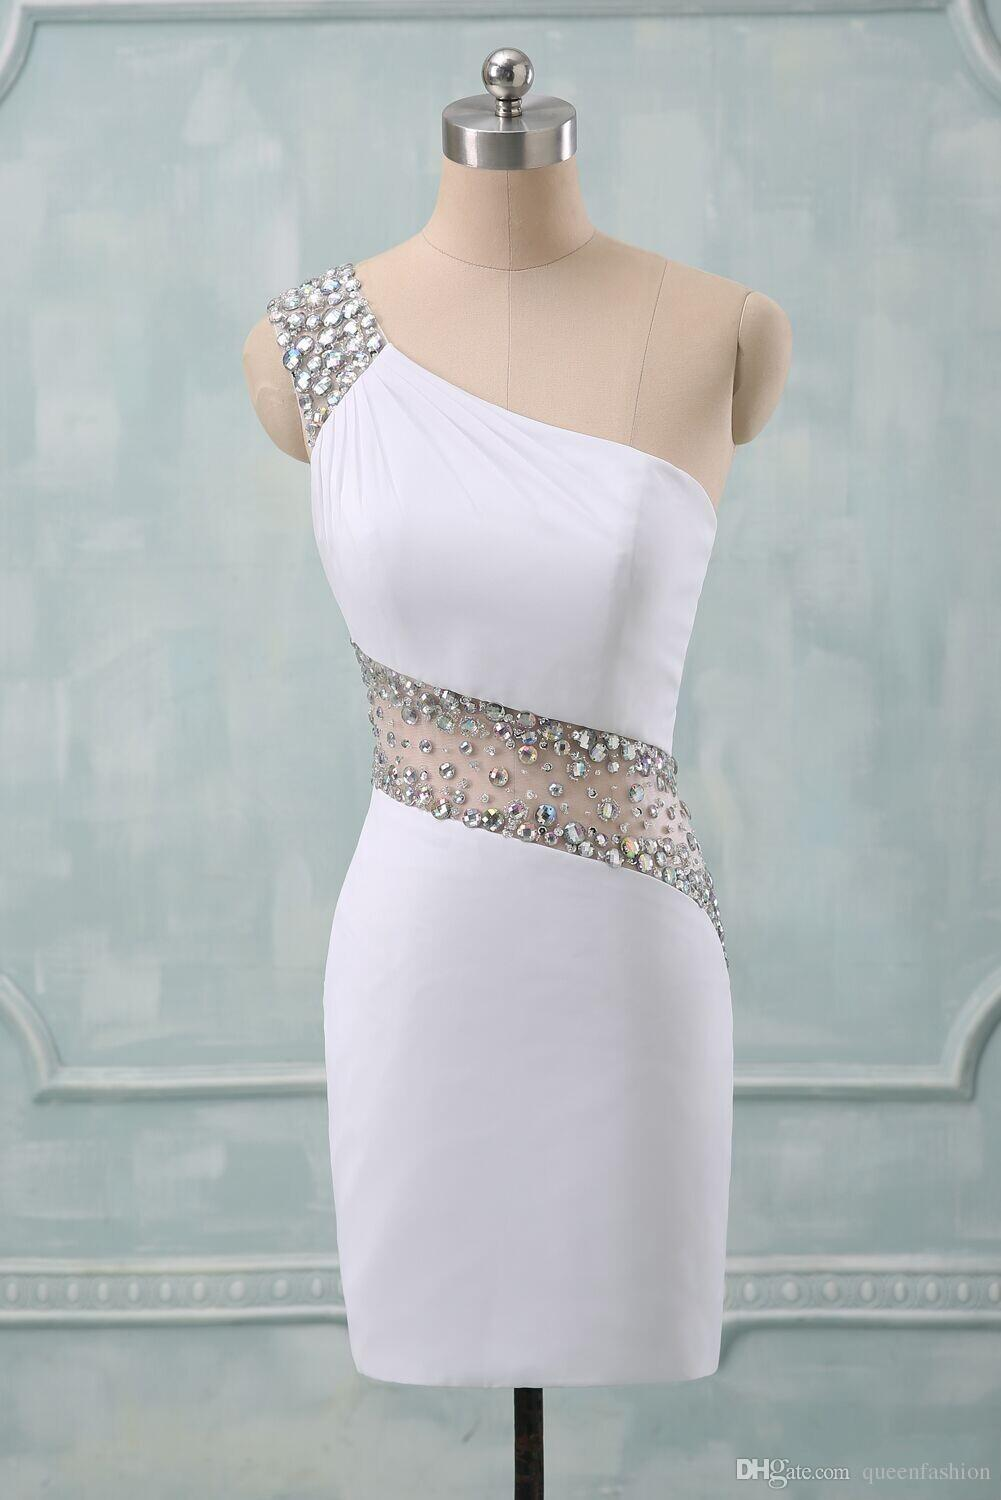 One Shoulder Sheath white Satin Short Prom Dress with Crystals